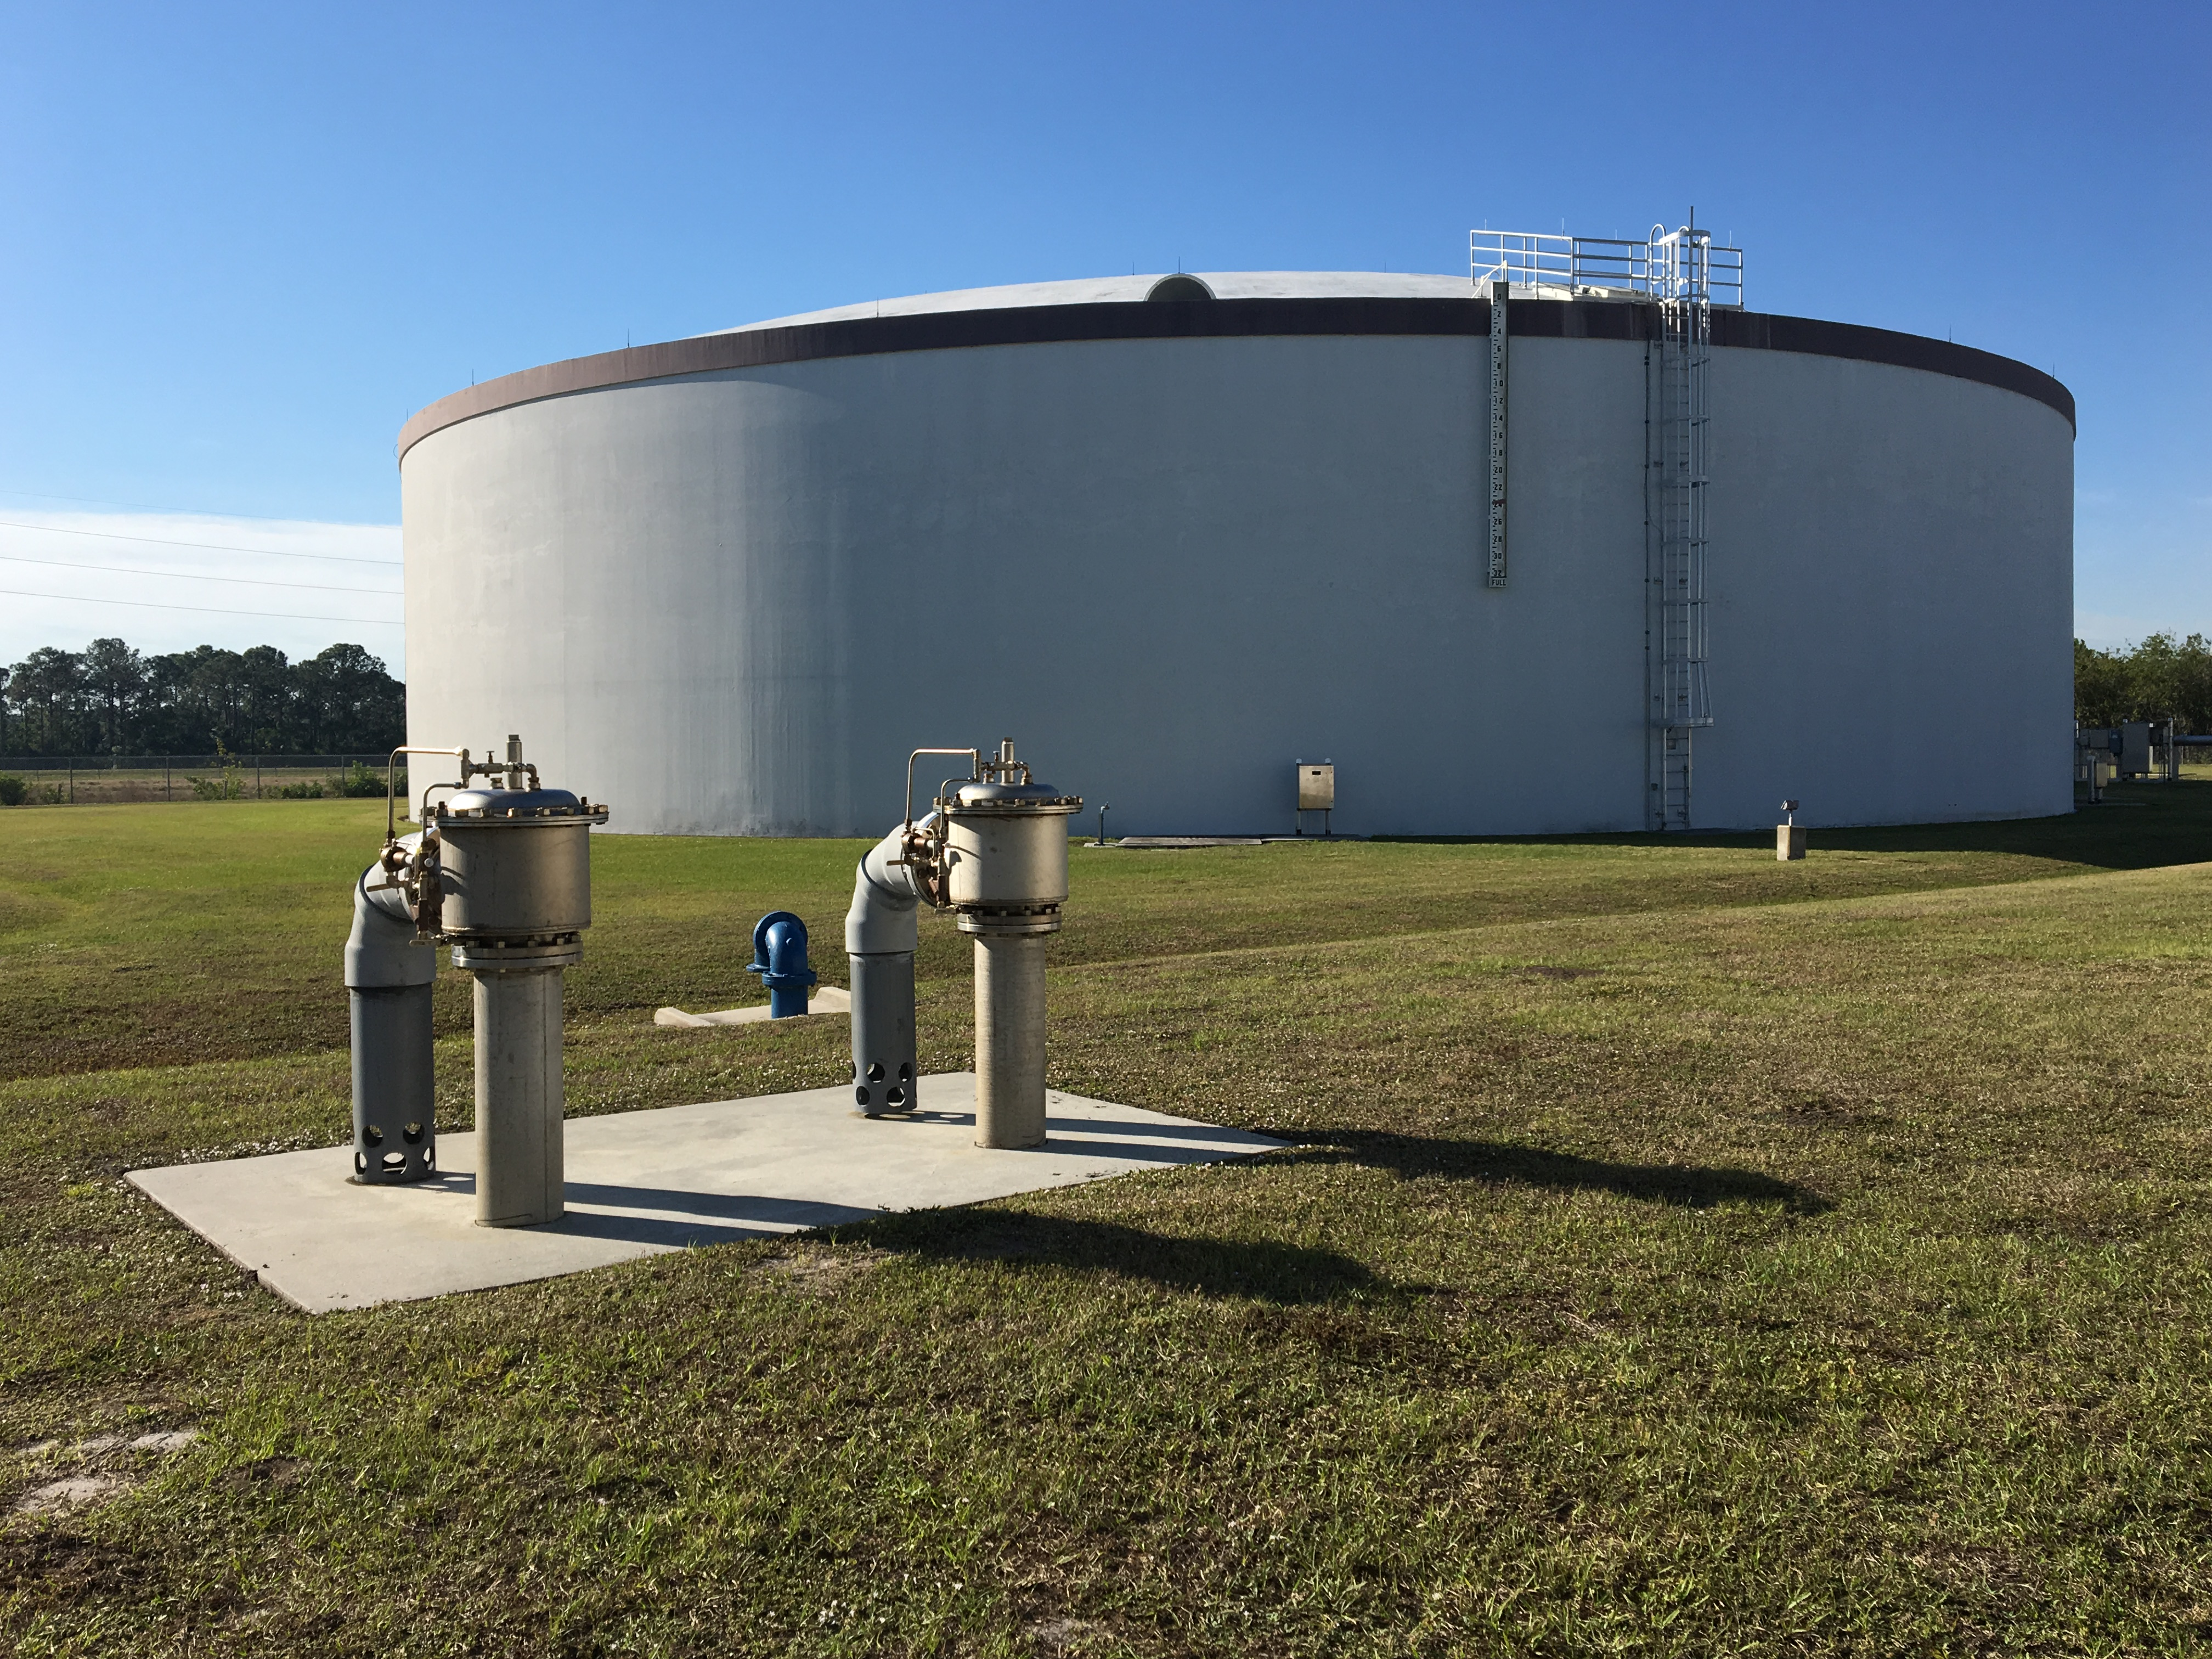 Exterior of 4-million gallon water storage tank at James E. Anderson Water Treatment Facility